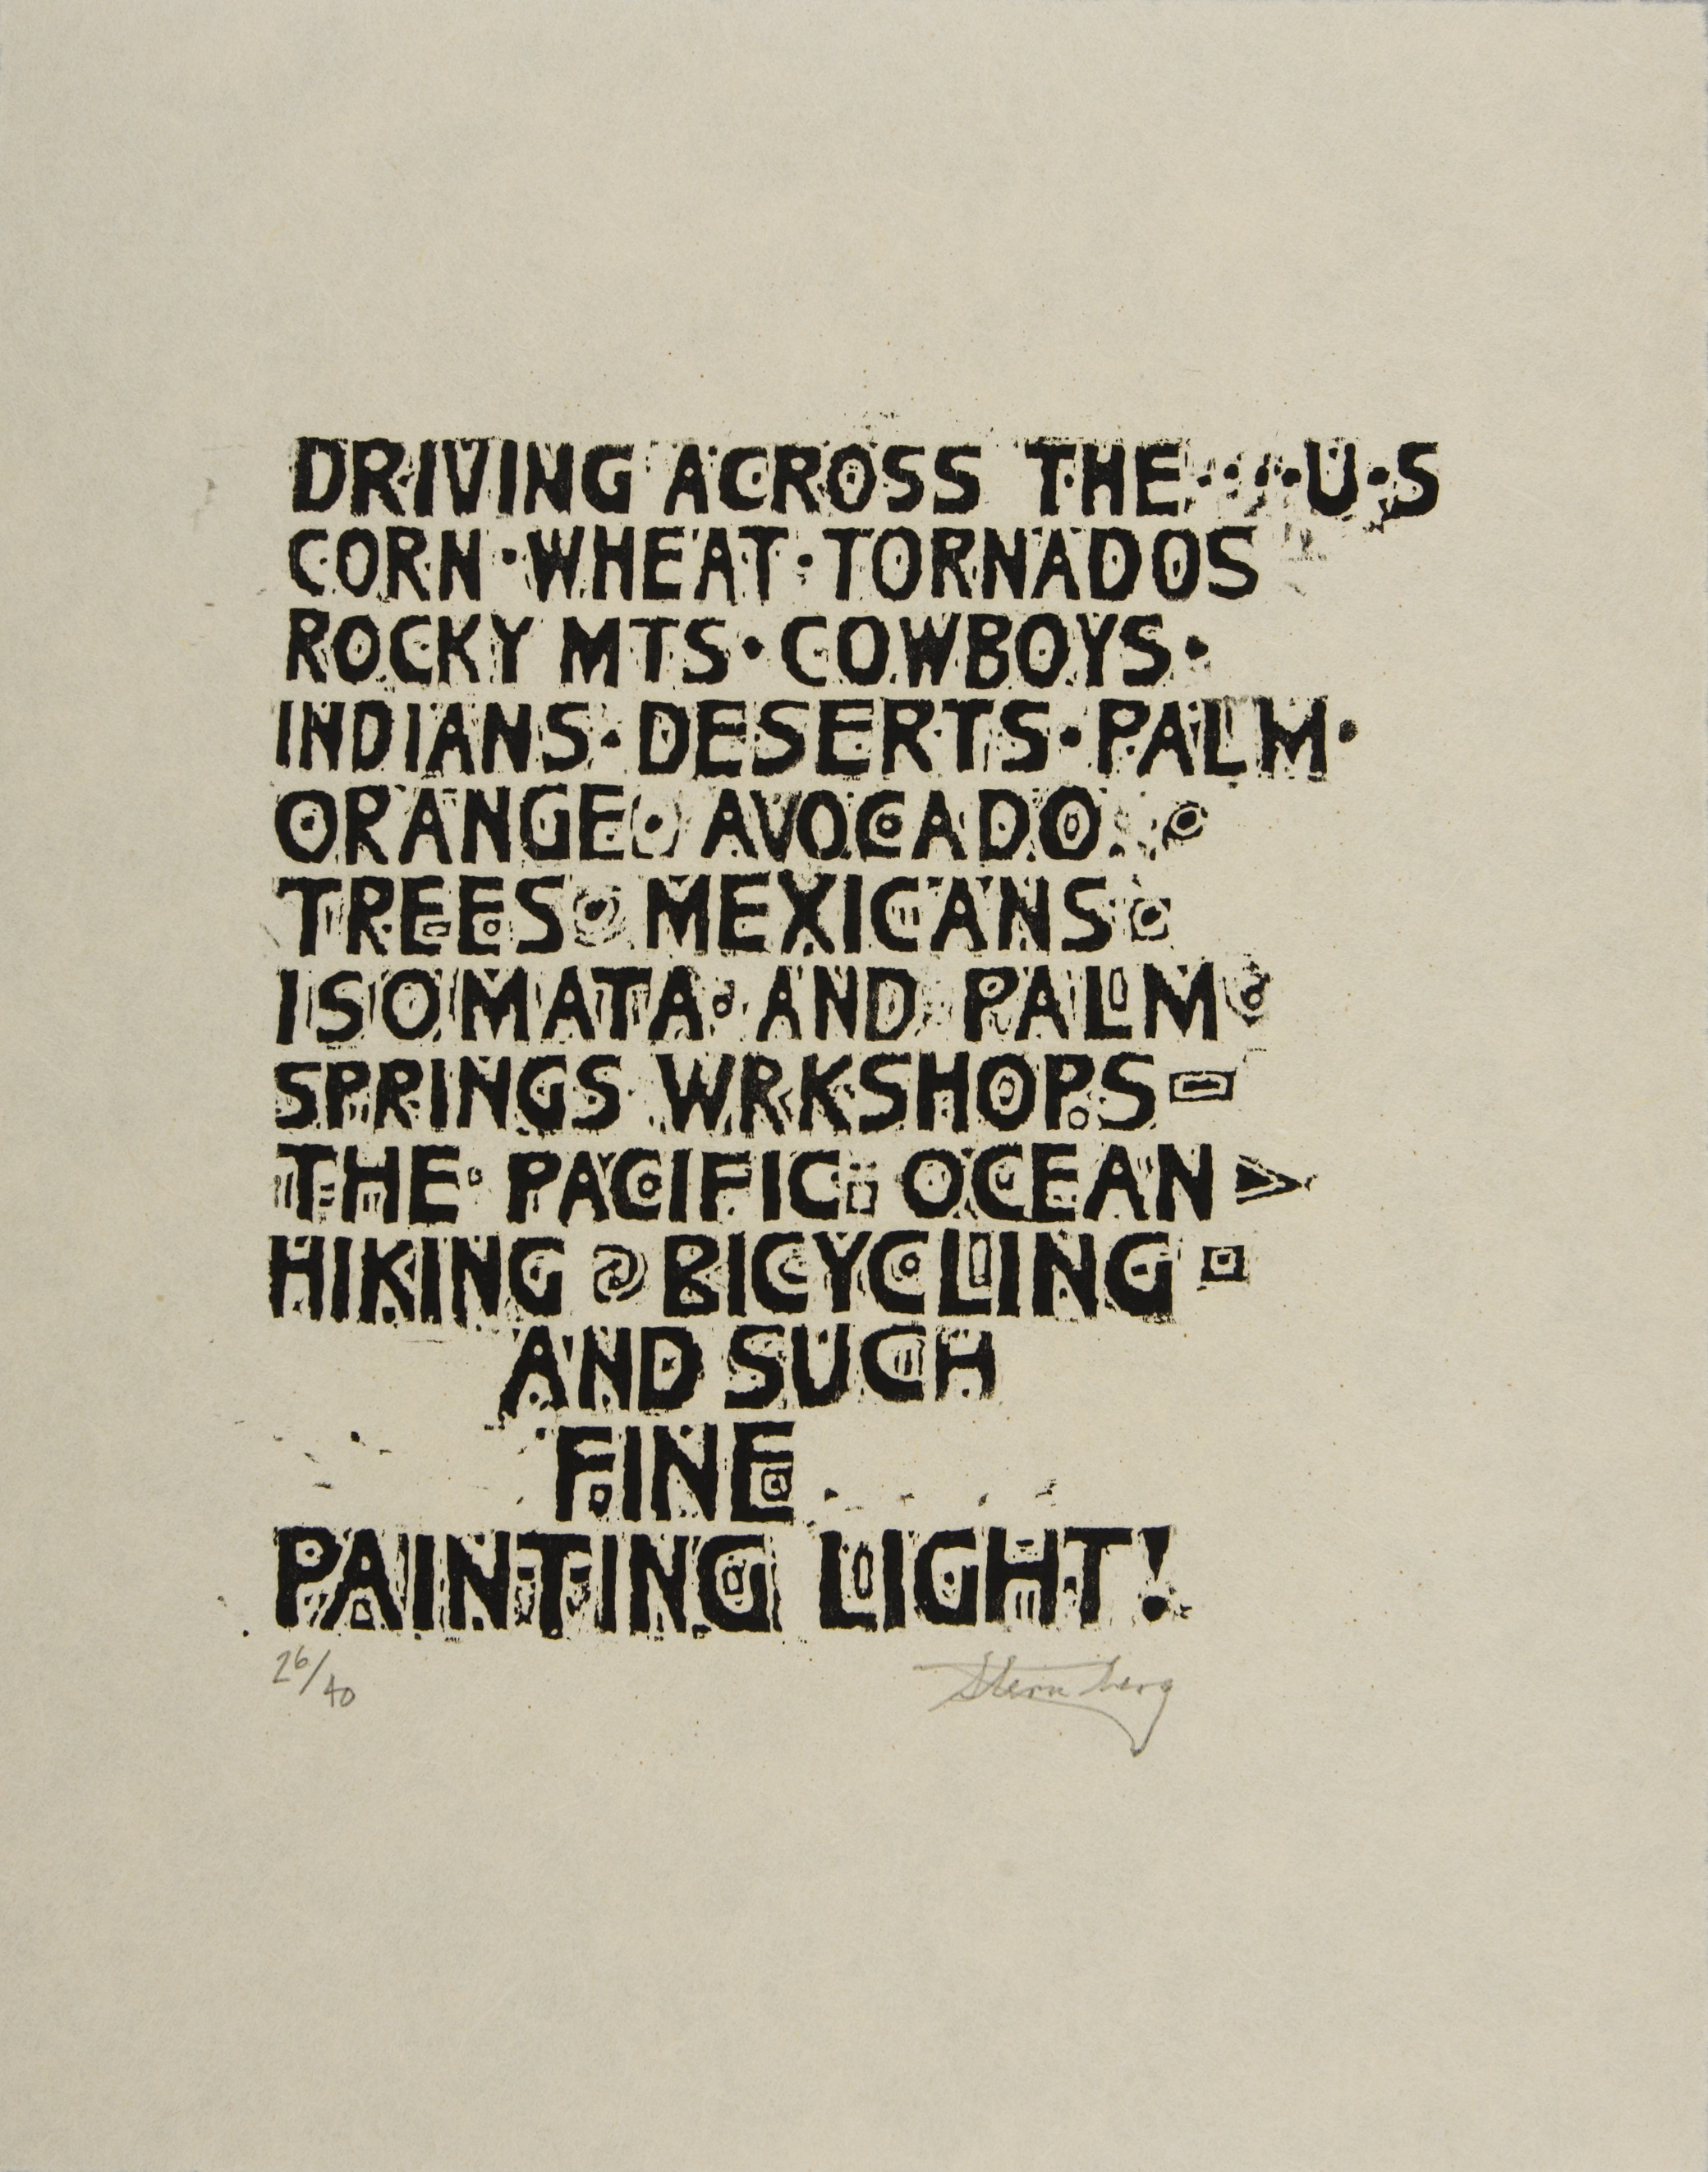 This print lists in black a series of words separated by small design elements, incorporating the texture of the woodblock. The text reads: Driving Across the US/Corn Wheat Tornados/Rocky Mts Cowboys/Indians Deserts Palm/Orange Avacado/Trees Mexicans/Isomata and Palm/Springs Wrkshops/The Pacific Ocean/Hiking Bicycling/And Such/Fine/Painting Light!